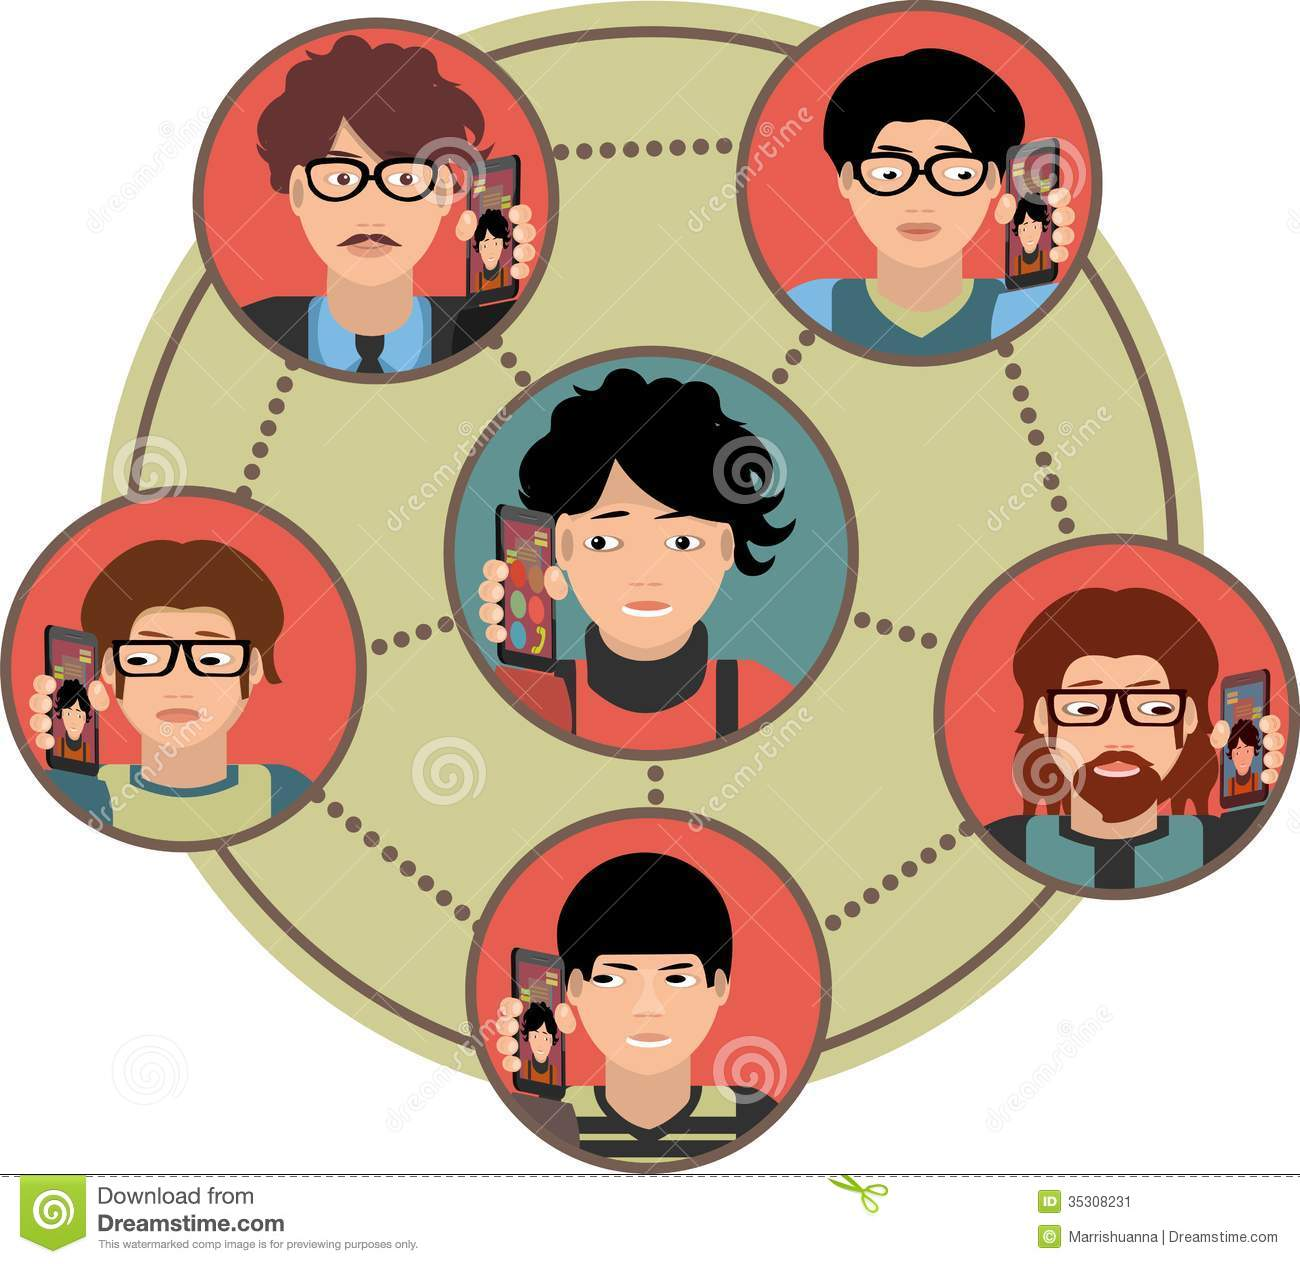 Phone clipart conference call #4